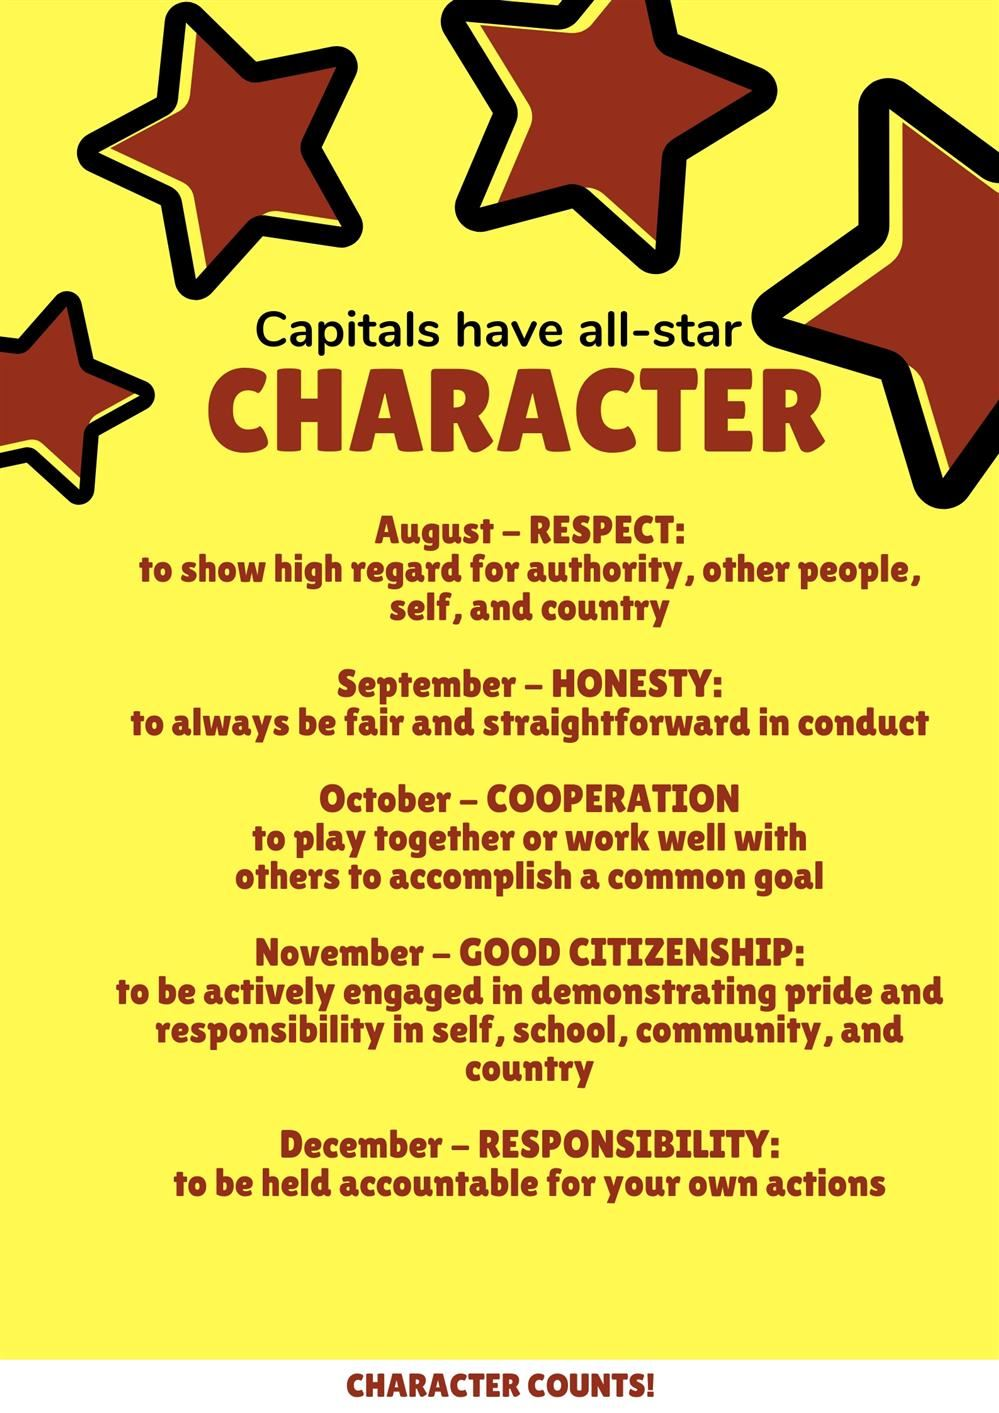 character trait image